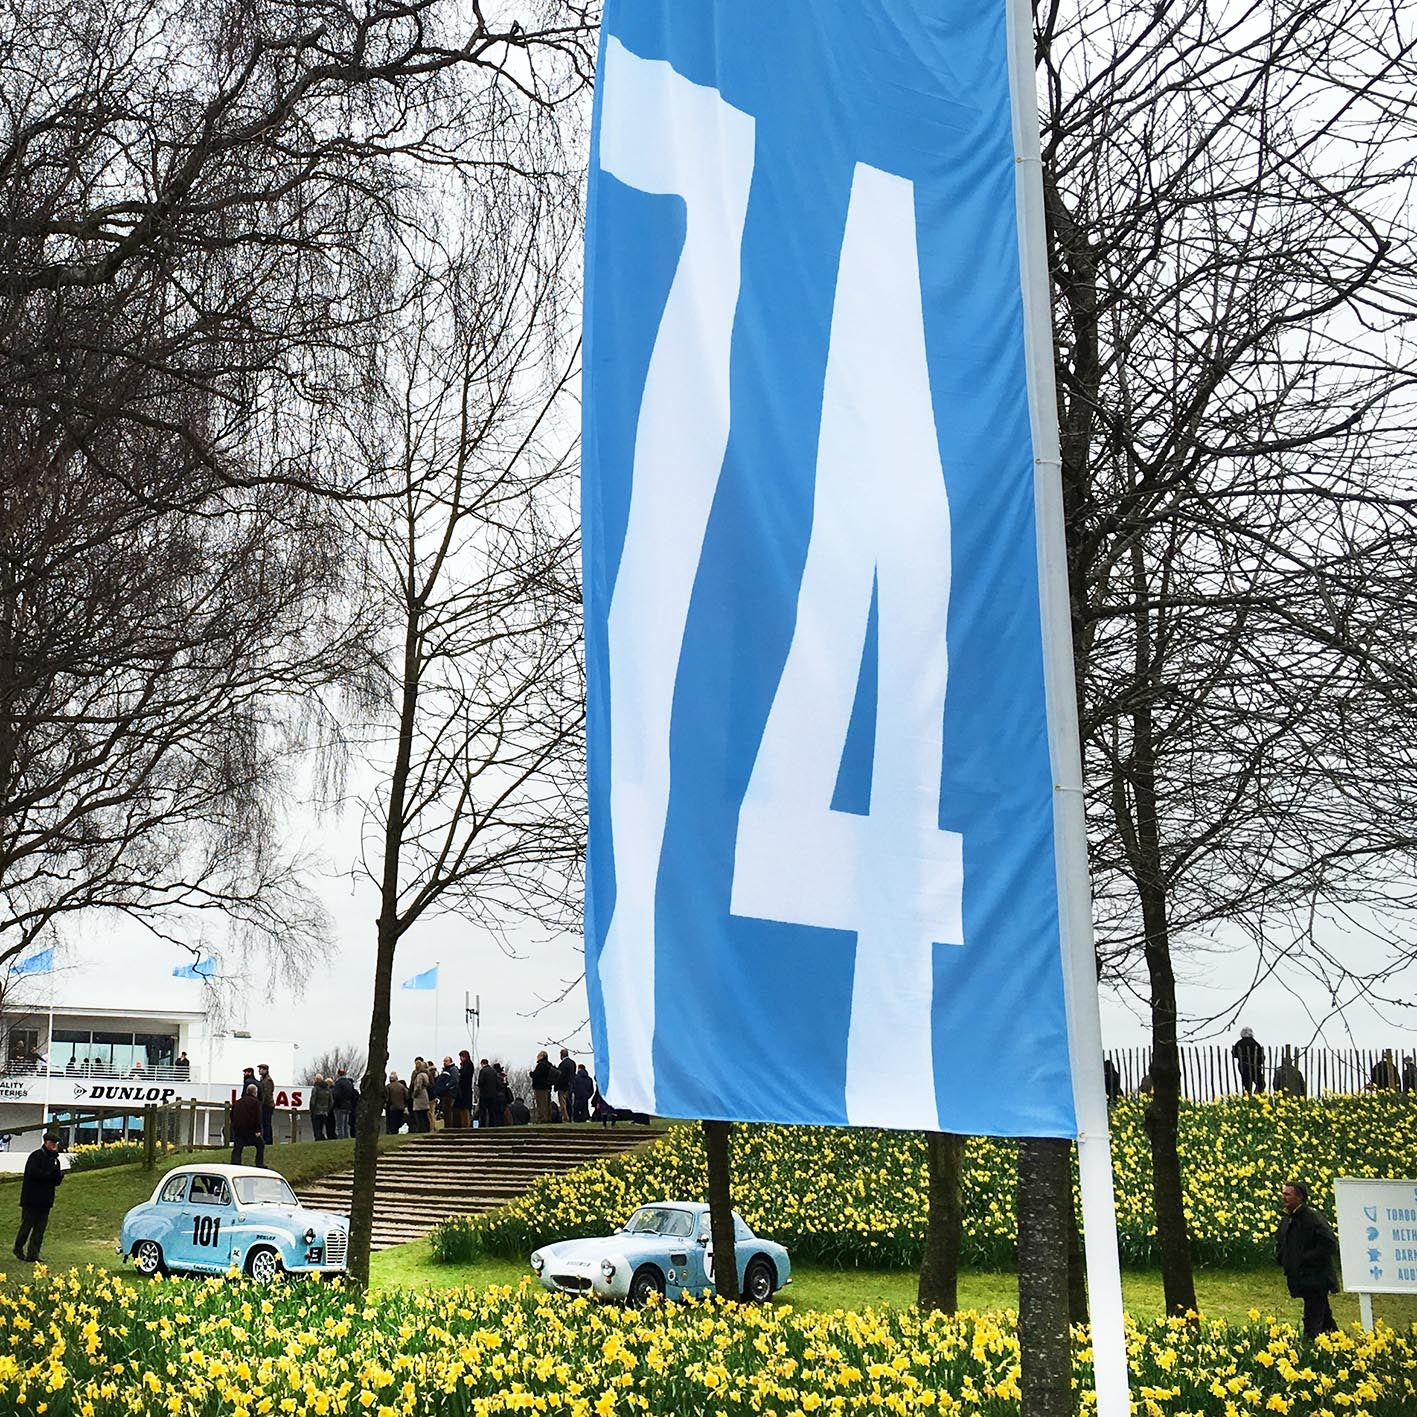 Goodwood crowds flock to the 74th Annual Members' Meeting